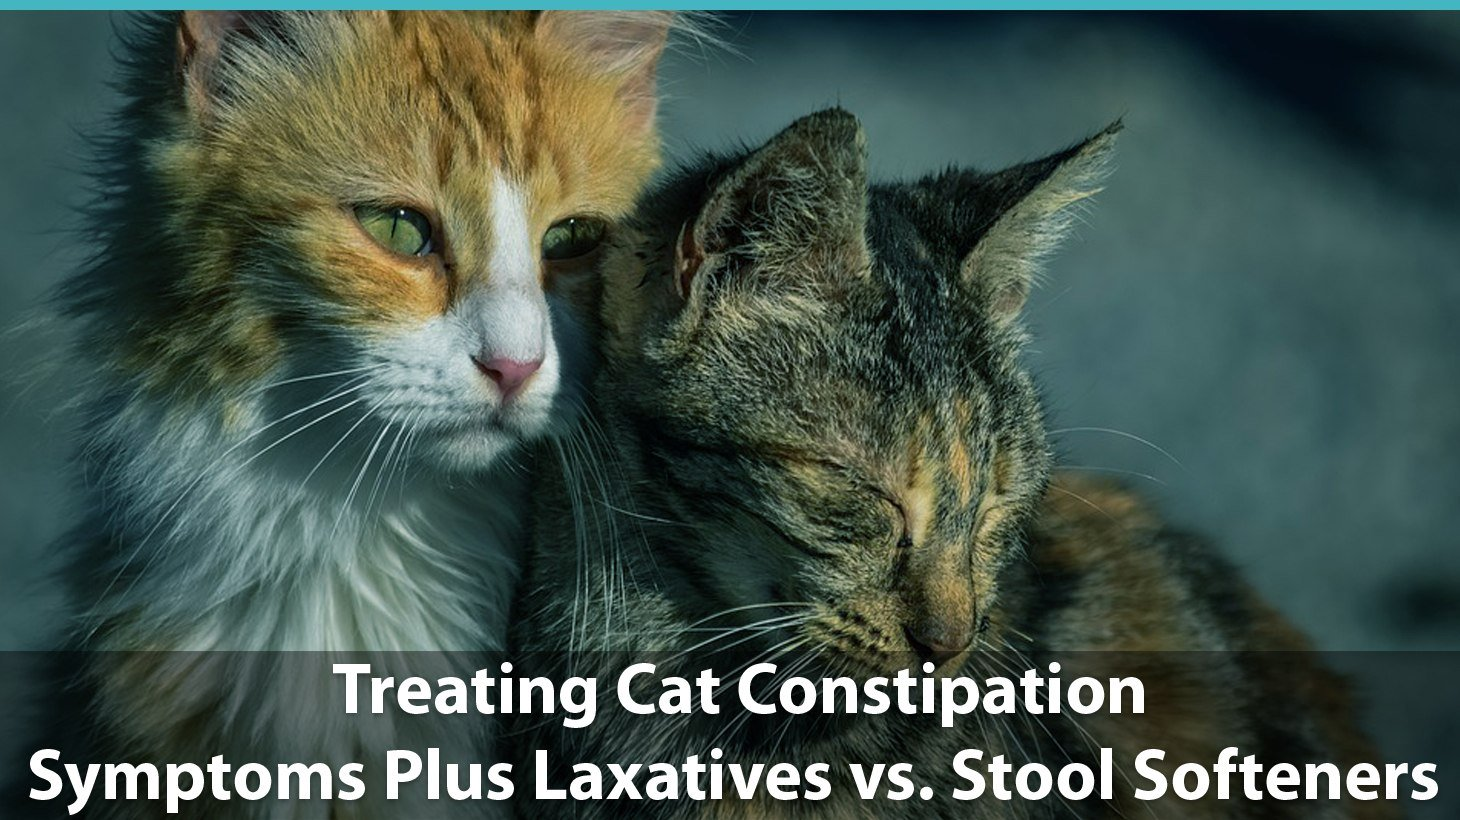 Treating Cat Constipation Symptoms And Laxatives Vs